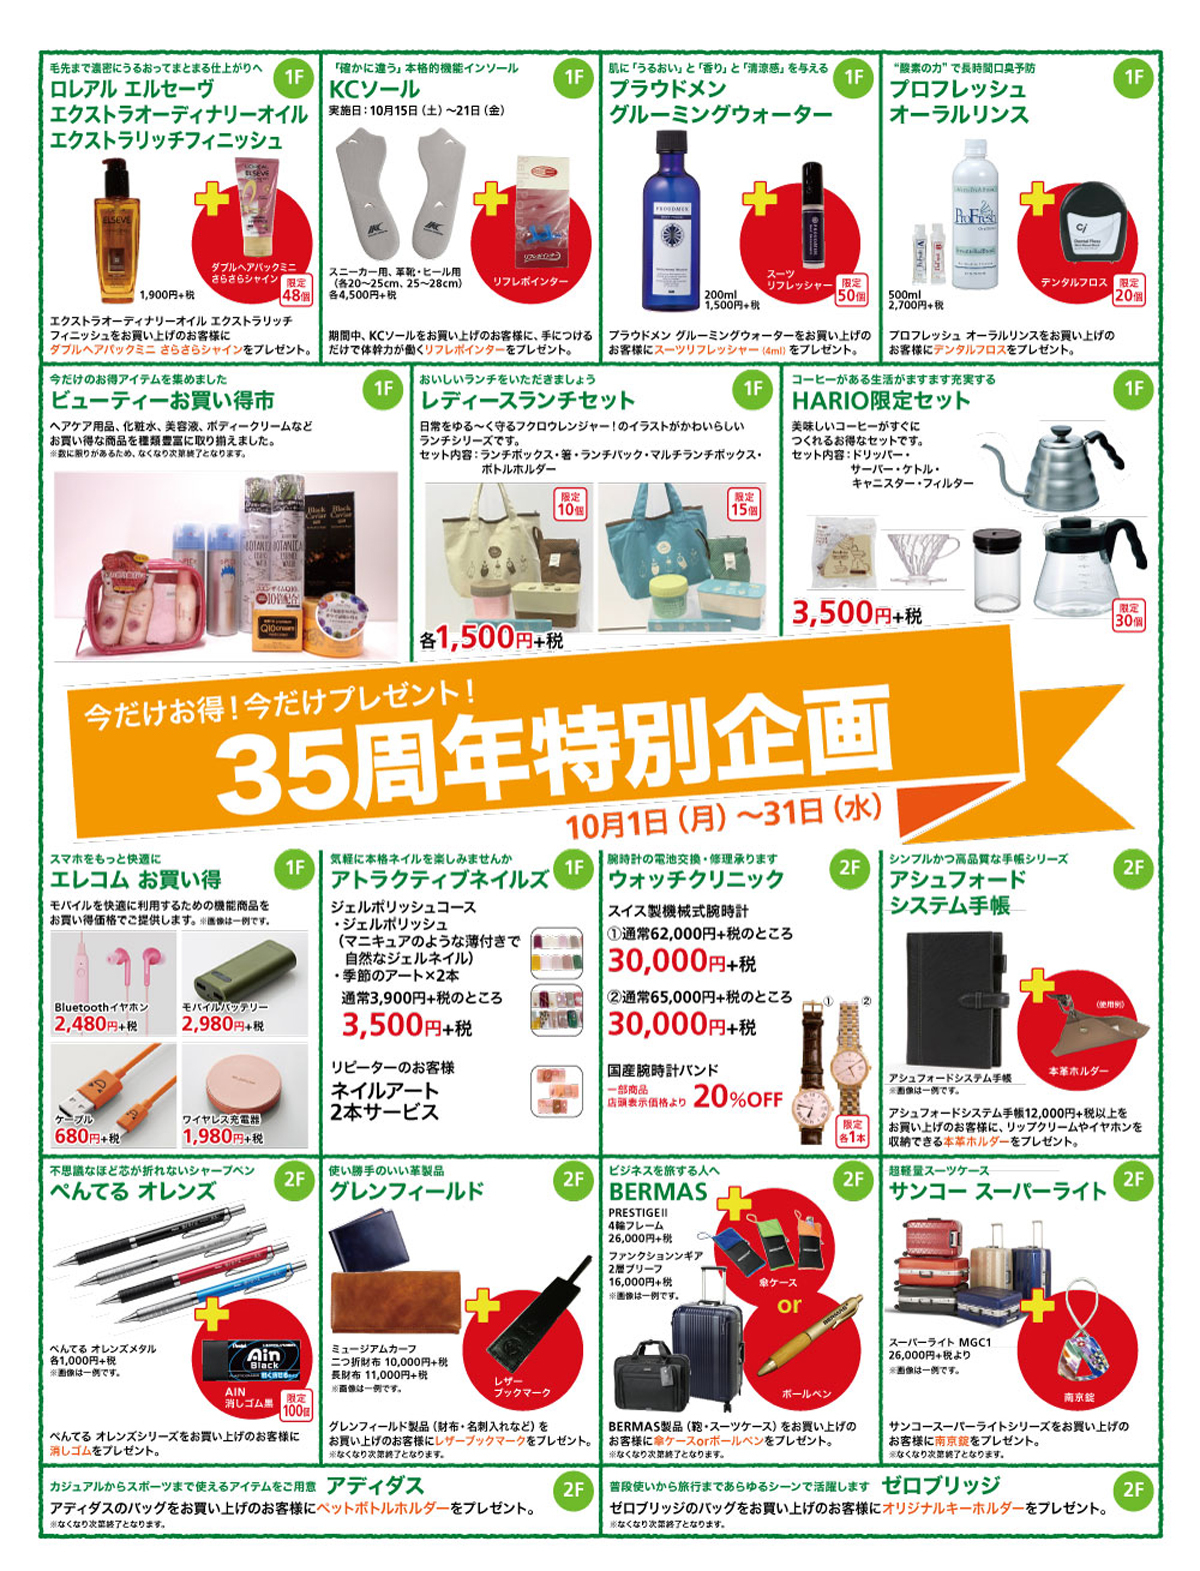 https://esaka.tokyu-hands.co.jp/item/35%E5%91%A8%E5%B9%B4%E3%81%8A%E5%BE%97%E4%BC%81%E7%94%BB.jpg